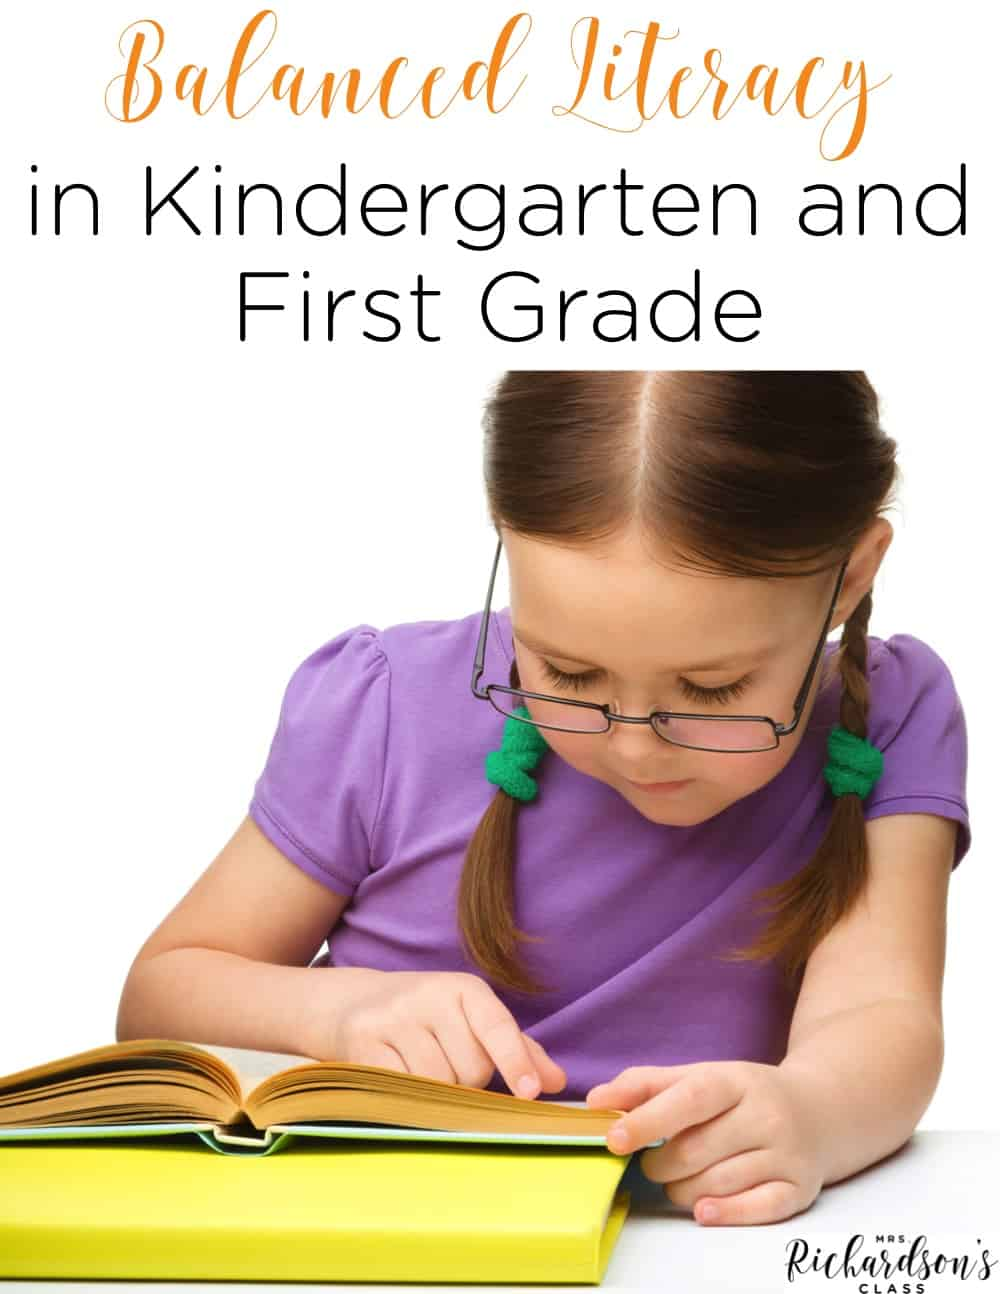 Balanced literacy in kindergarten and first grade is a crucial part of the day. Each component plays a role in the gradual release model. This post helps explain each part of the balanced literacy components and how you can implement them, too! #balancedliteracy #kinergarten #firstgrade #secondgrade #guidedreading #balancedliteracycomponents